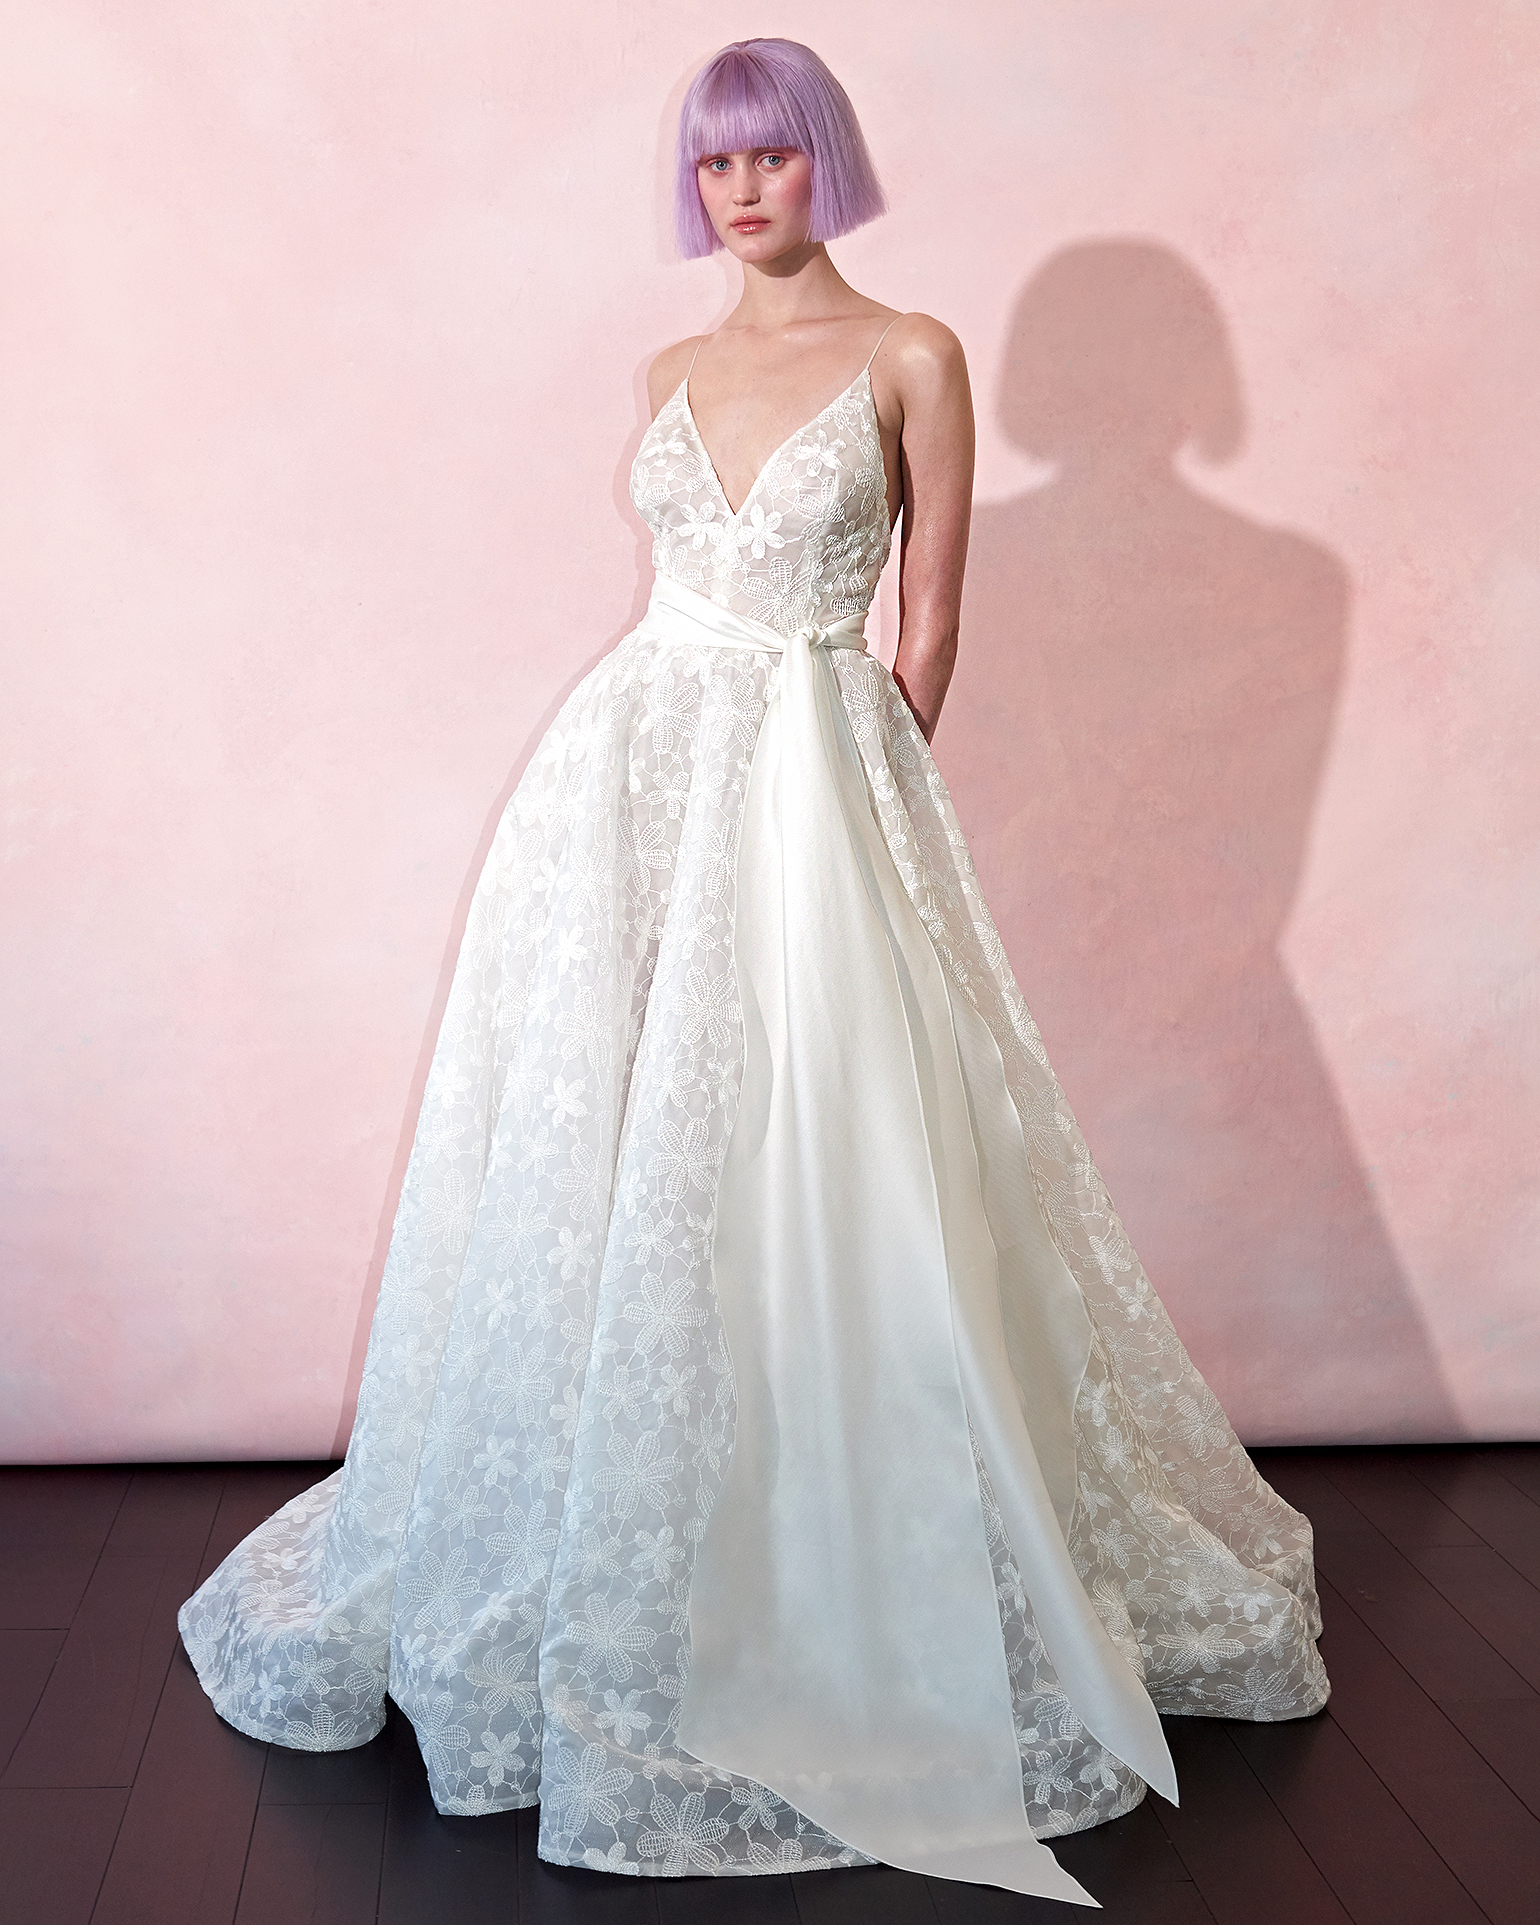 isabelle armstrong wedding dress spring 2019 embroidered flowers long sash